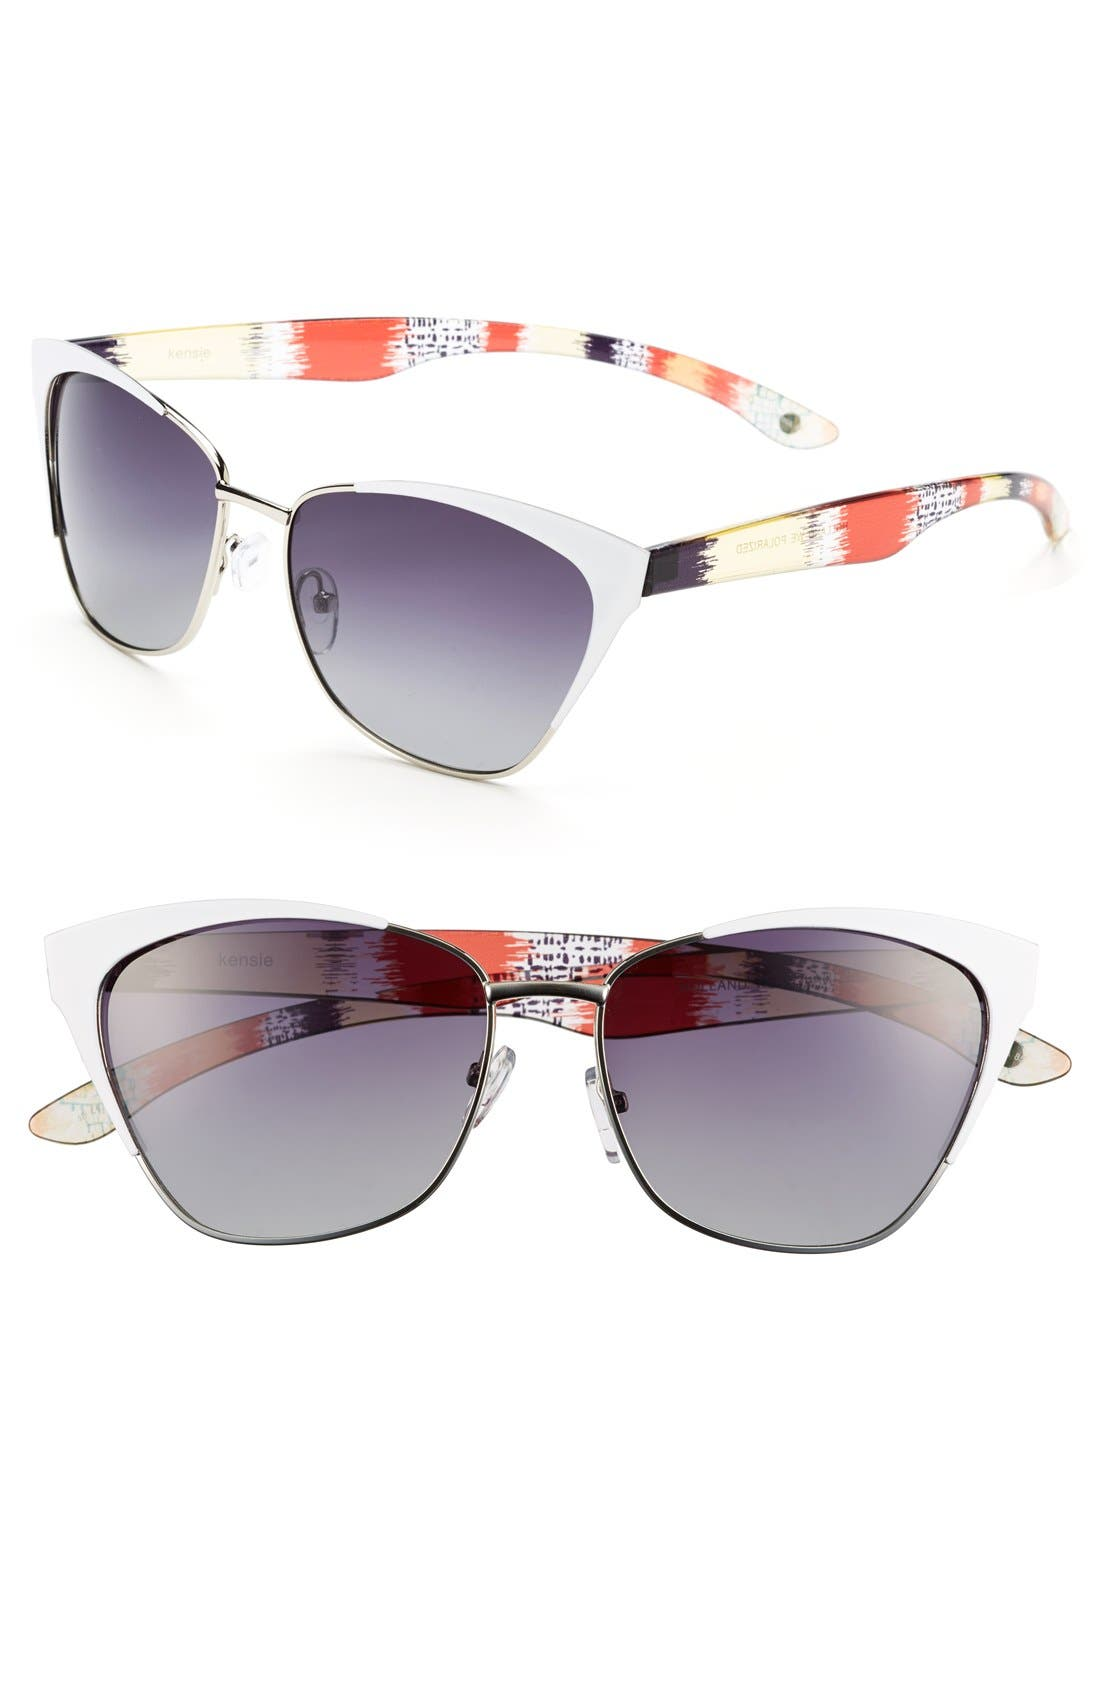 Main Image - kensie 'Holland' 57mm Polarized Cat Eye Sunglasses